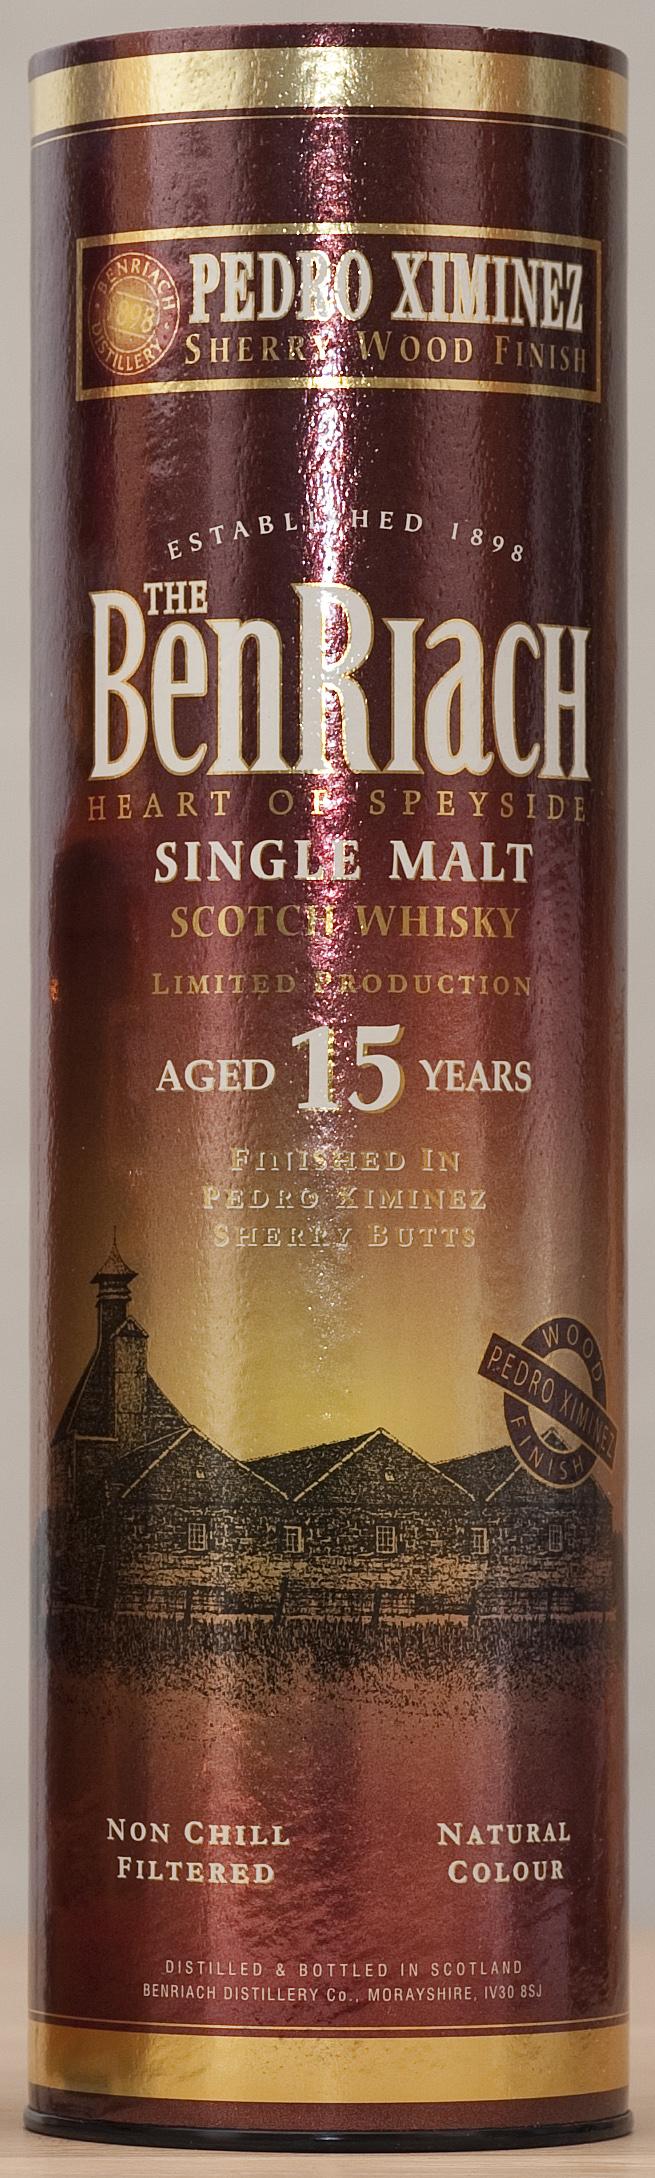 Billede: benriach 15 px sheery wood finish - tube.jpg